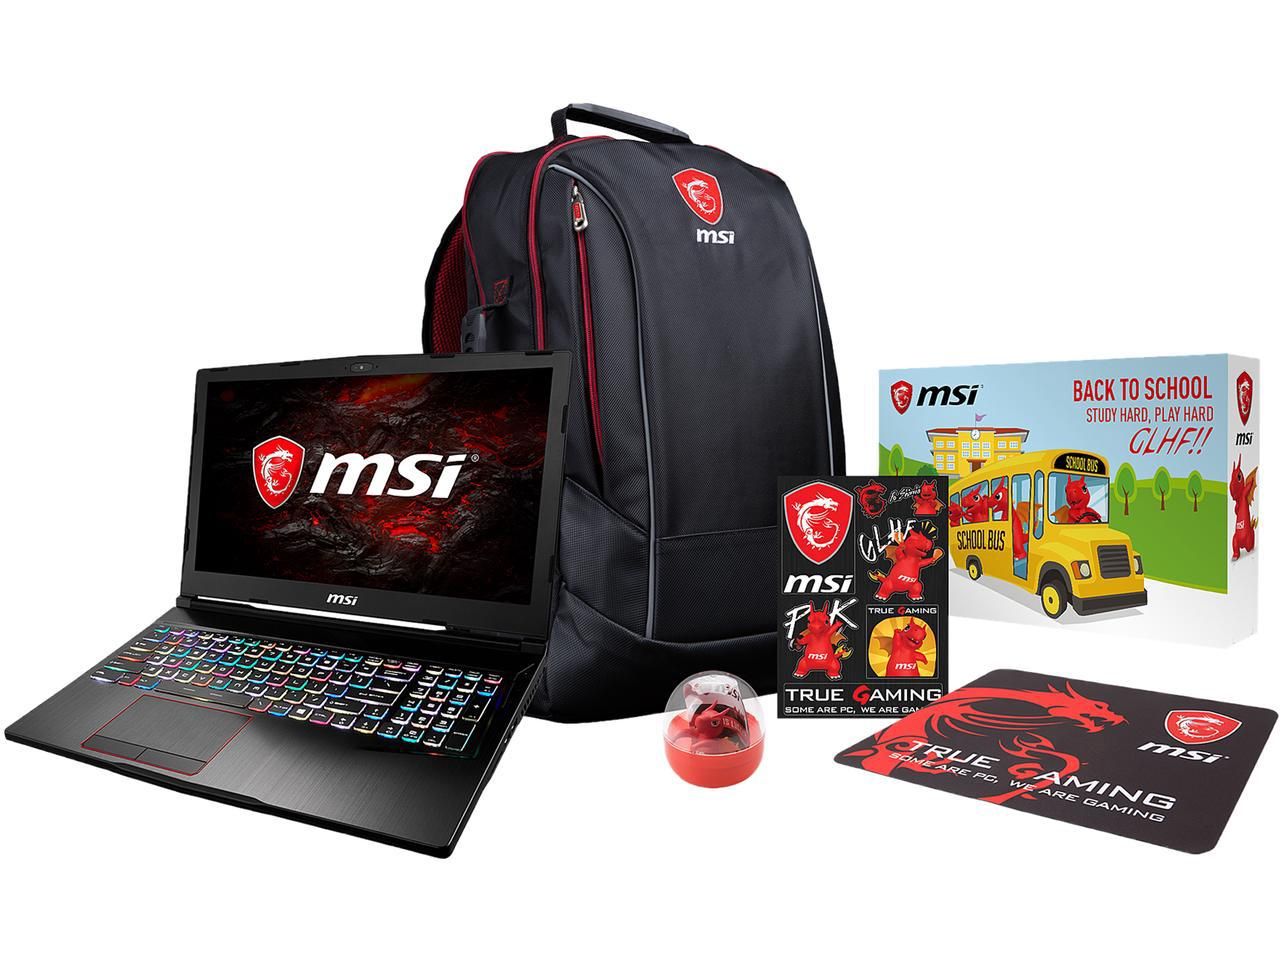 Msi Notebooks Now Shipping With Freebies For Back To